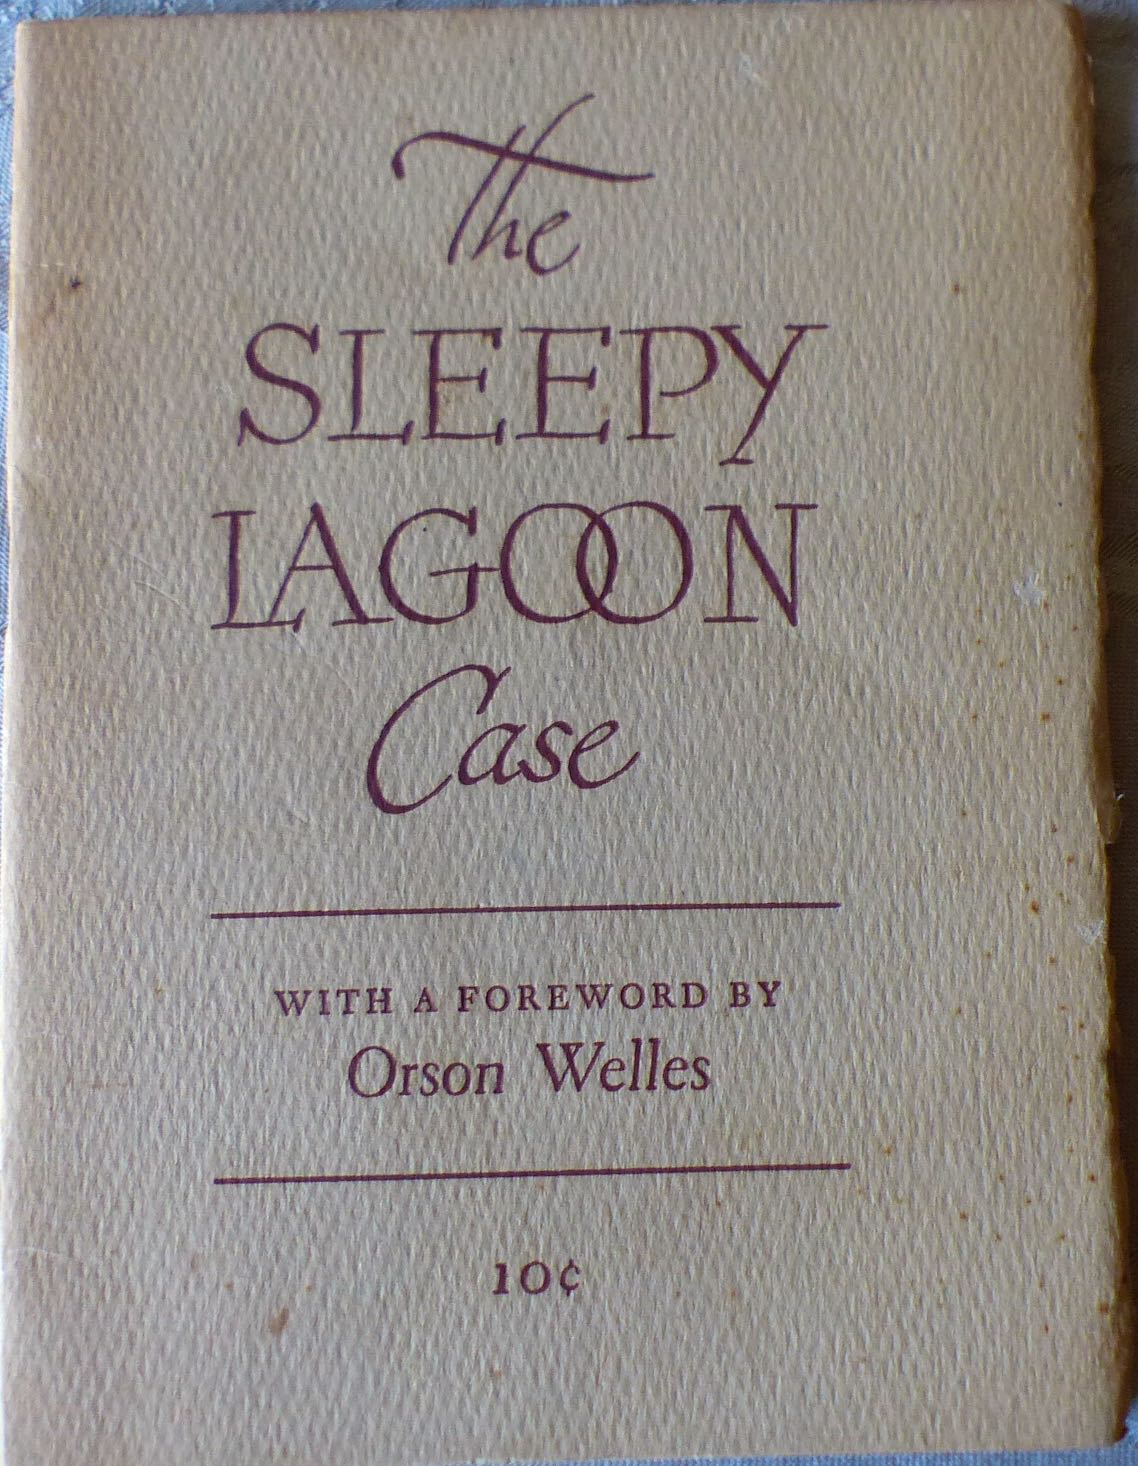 The Sleepy Lagoon Case